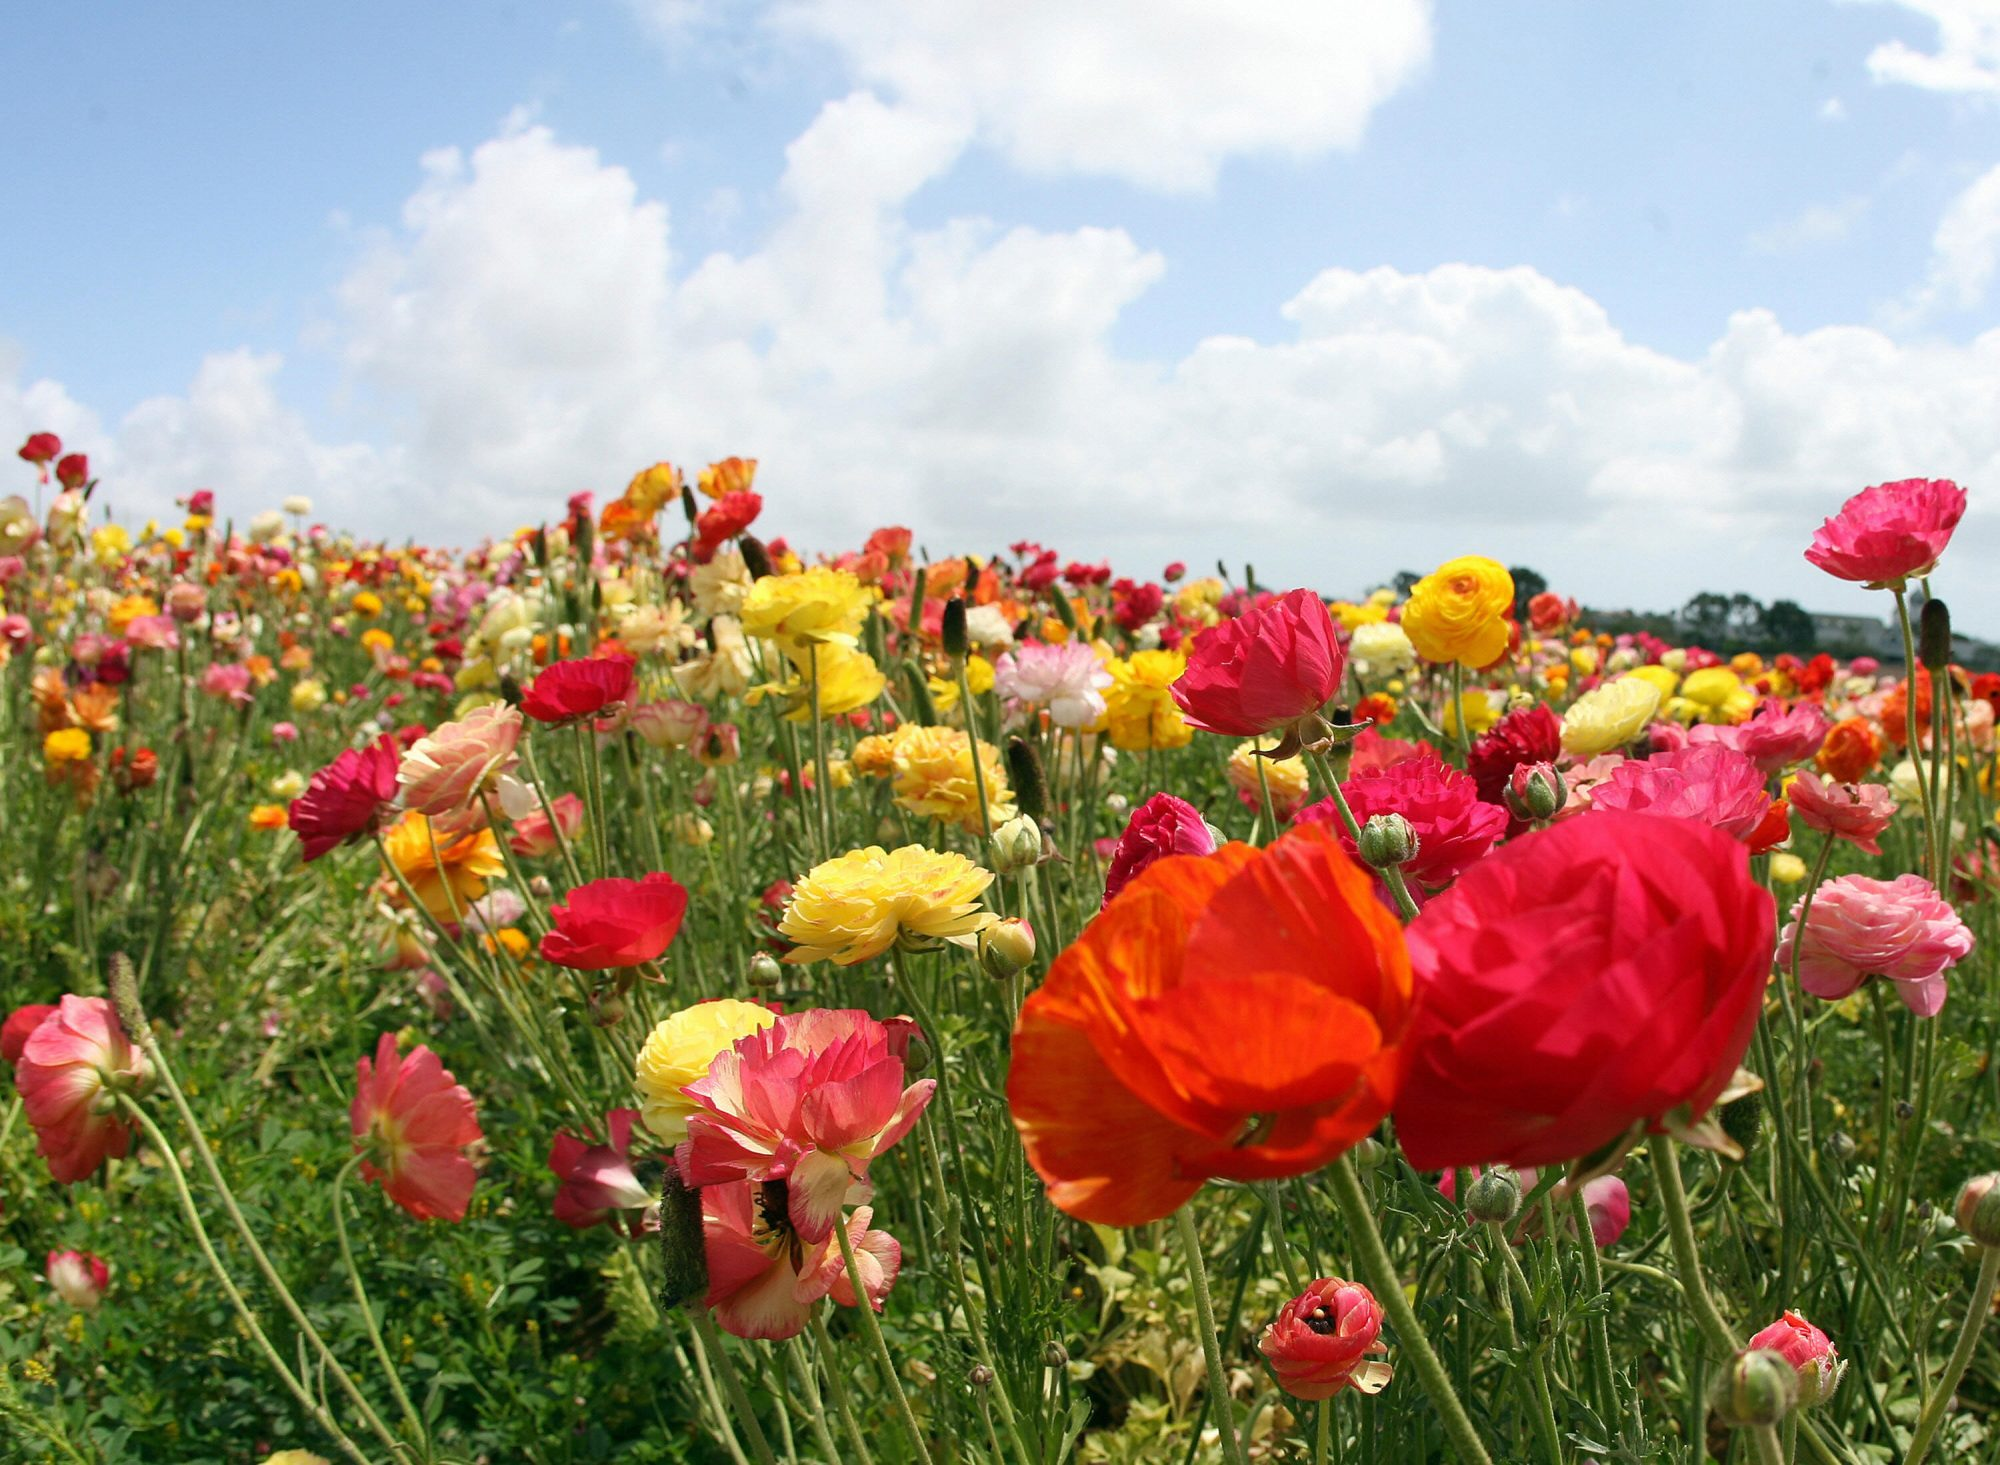 Field of Ranunculus